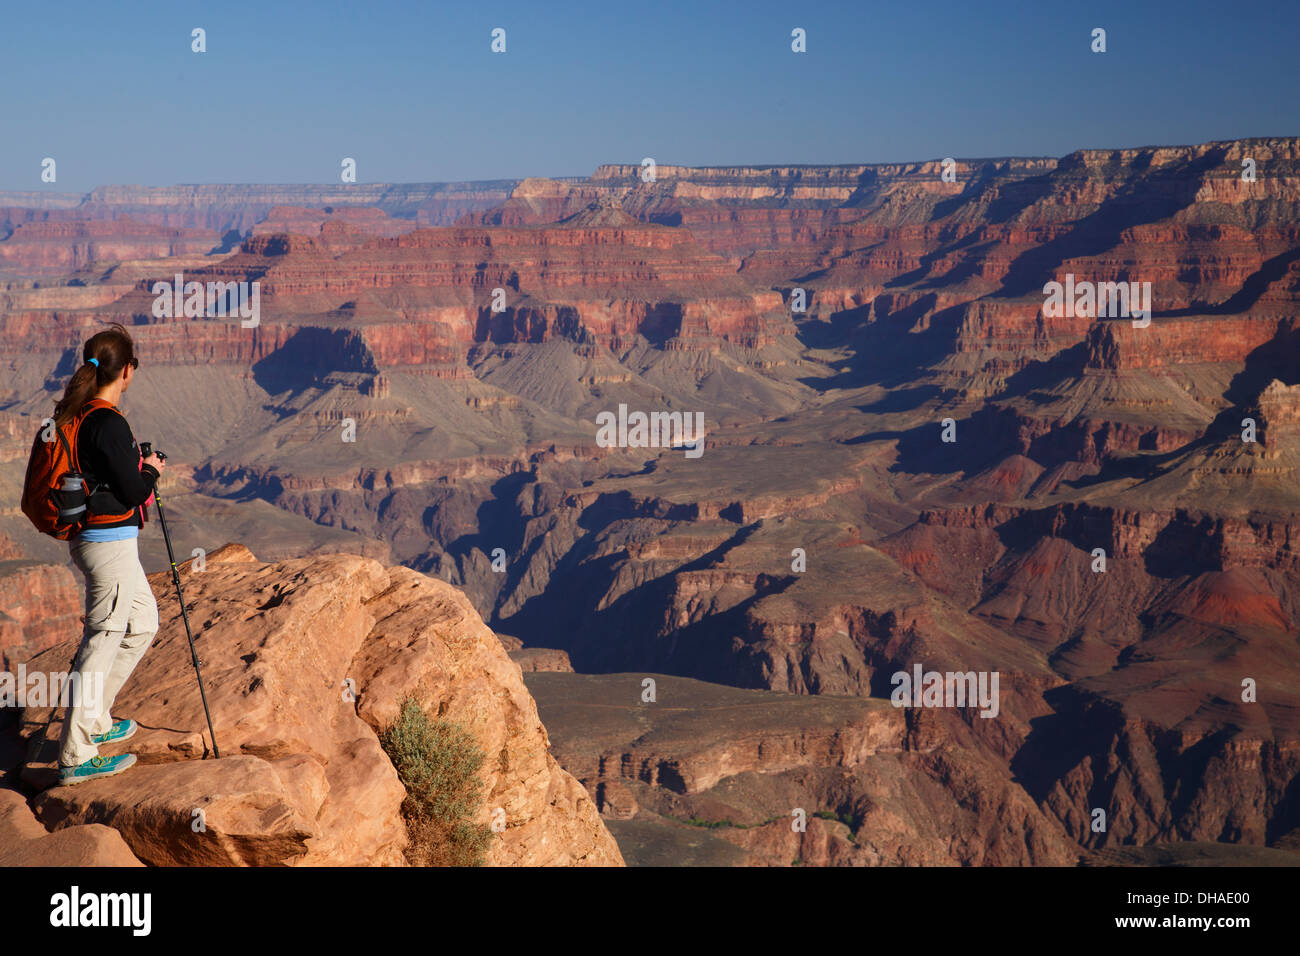 Hiker at Ooh-ahh Point on the South Kaibab Trail, Grand Canyon National Park, Arizona. (Model Released) - Stock Image